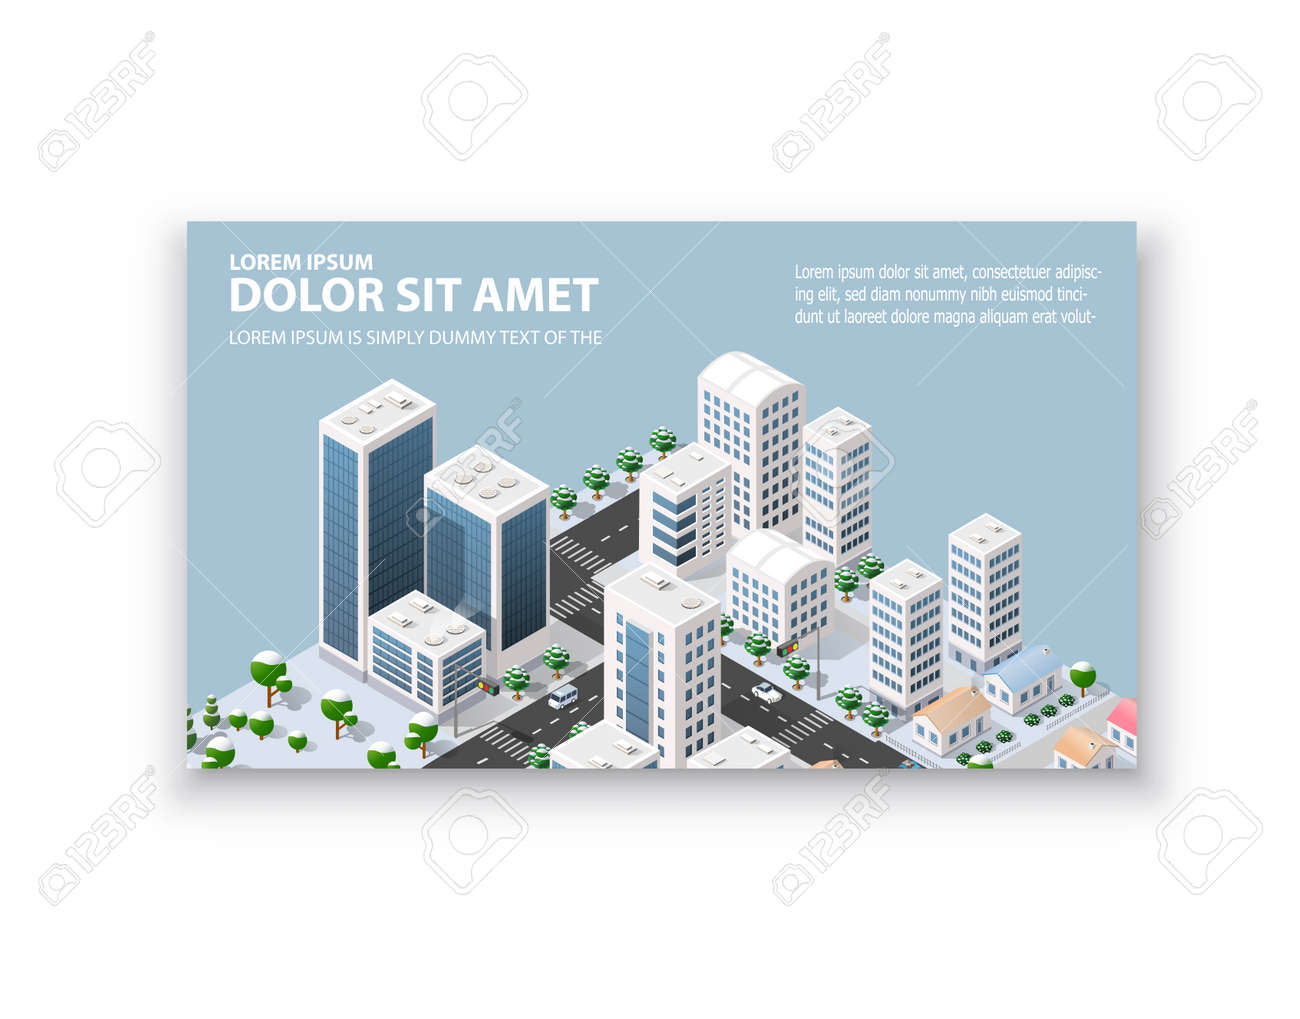 Business card template for real estate agencies construction business card template for real estate agencies construction companies and businesses tourist and fbccfo Images